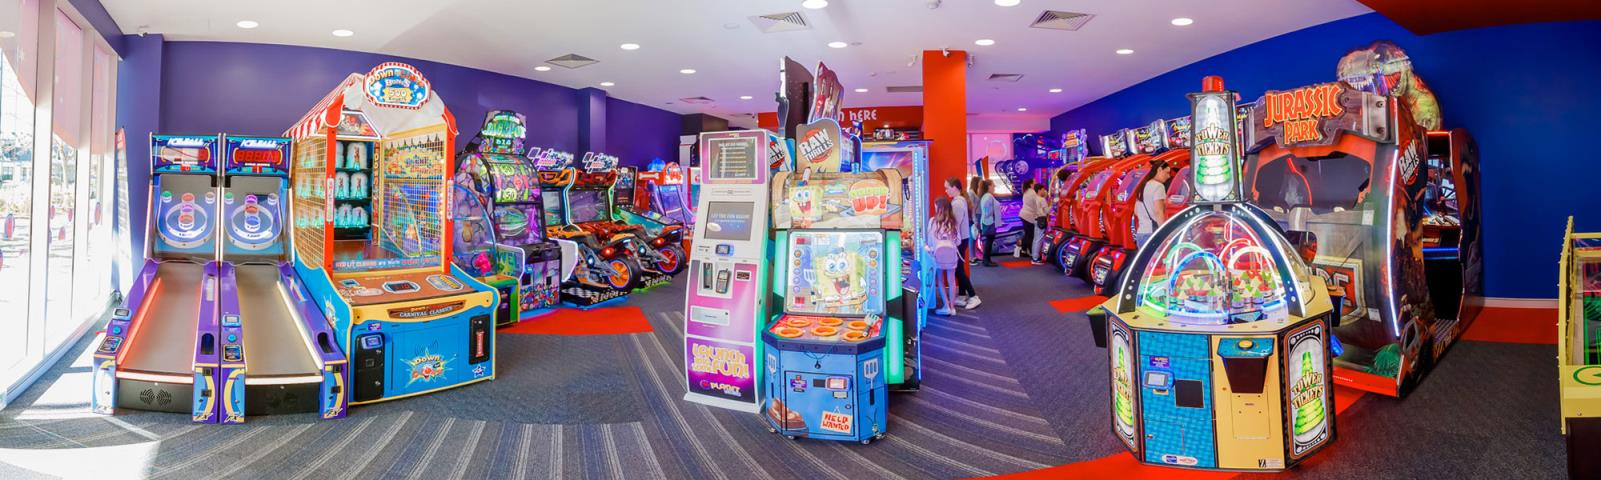 Planet Arcades - Westfield, North Lakes